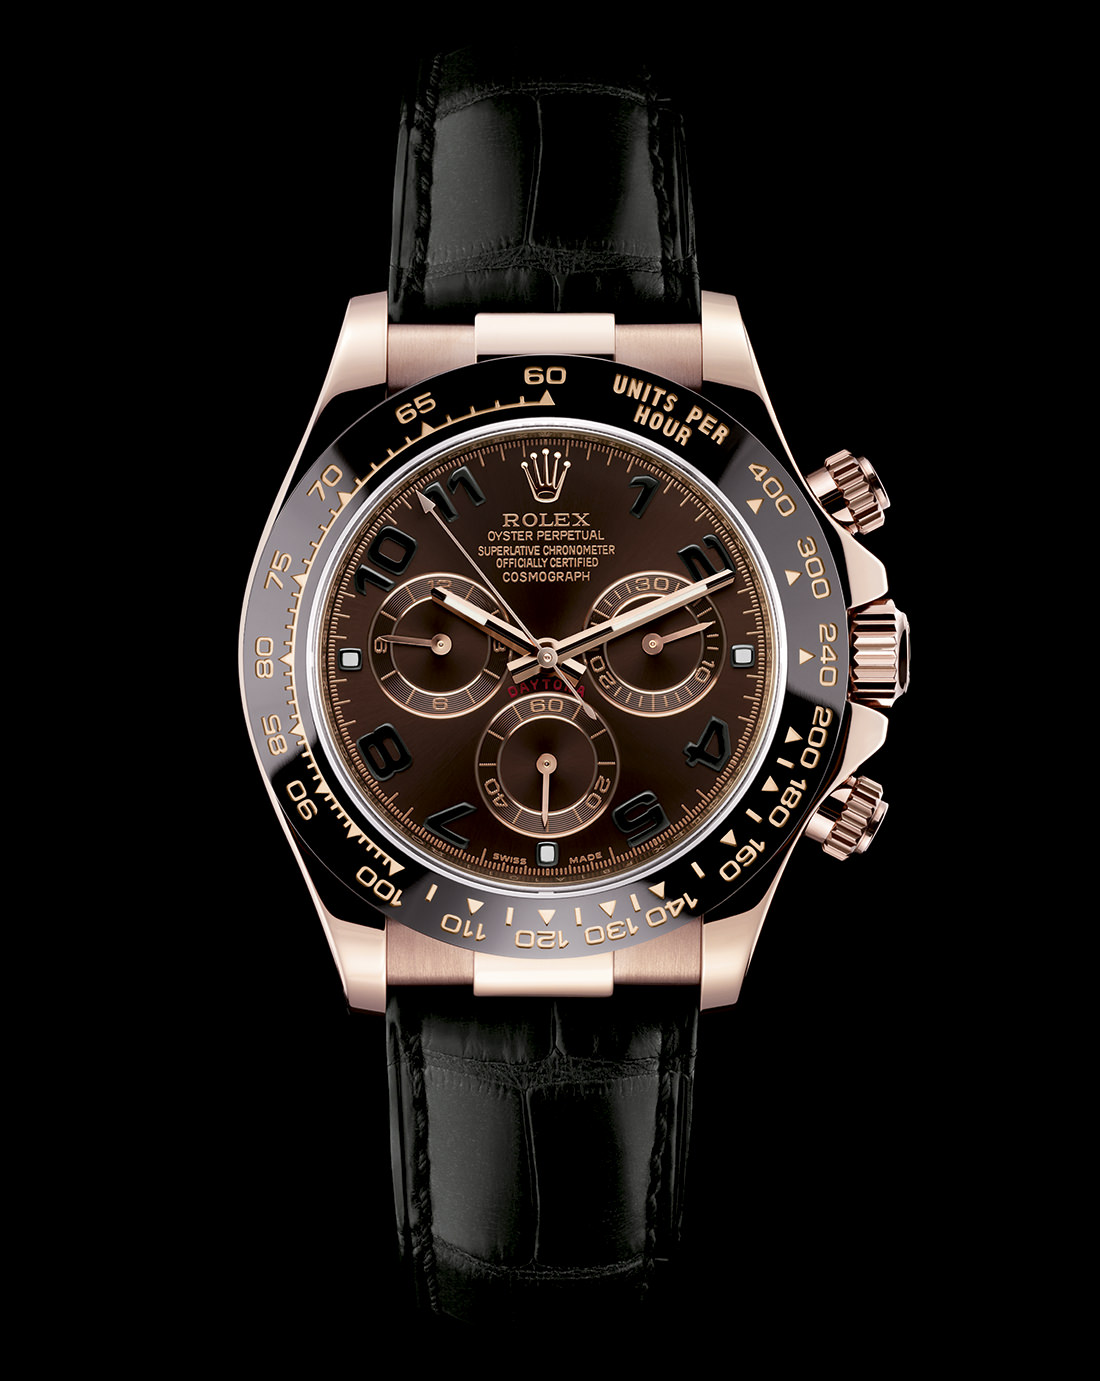 rolex-oyster-perpetual-cosmograph-daytona-1